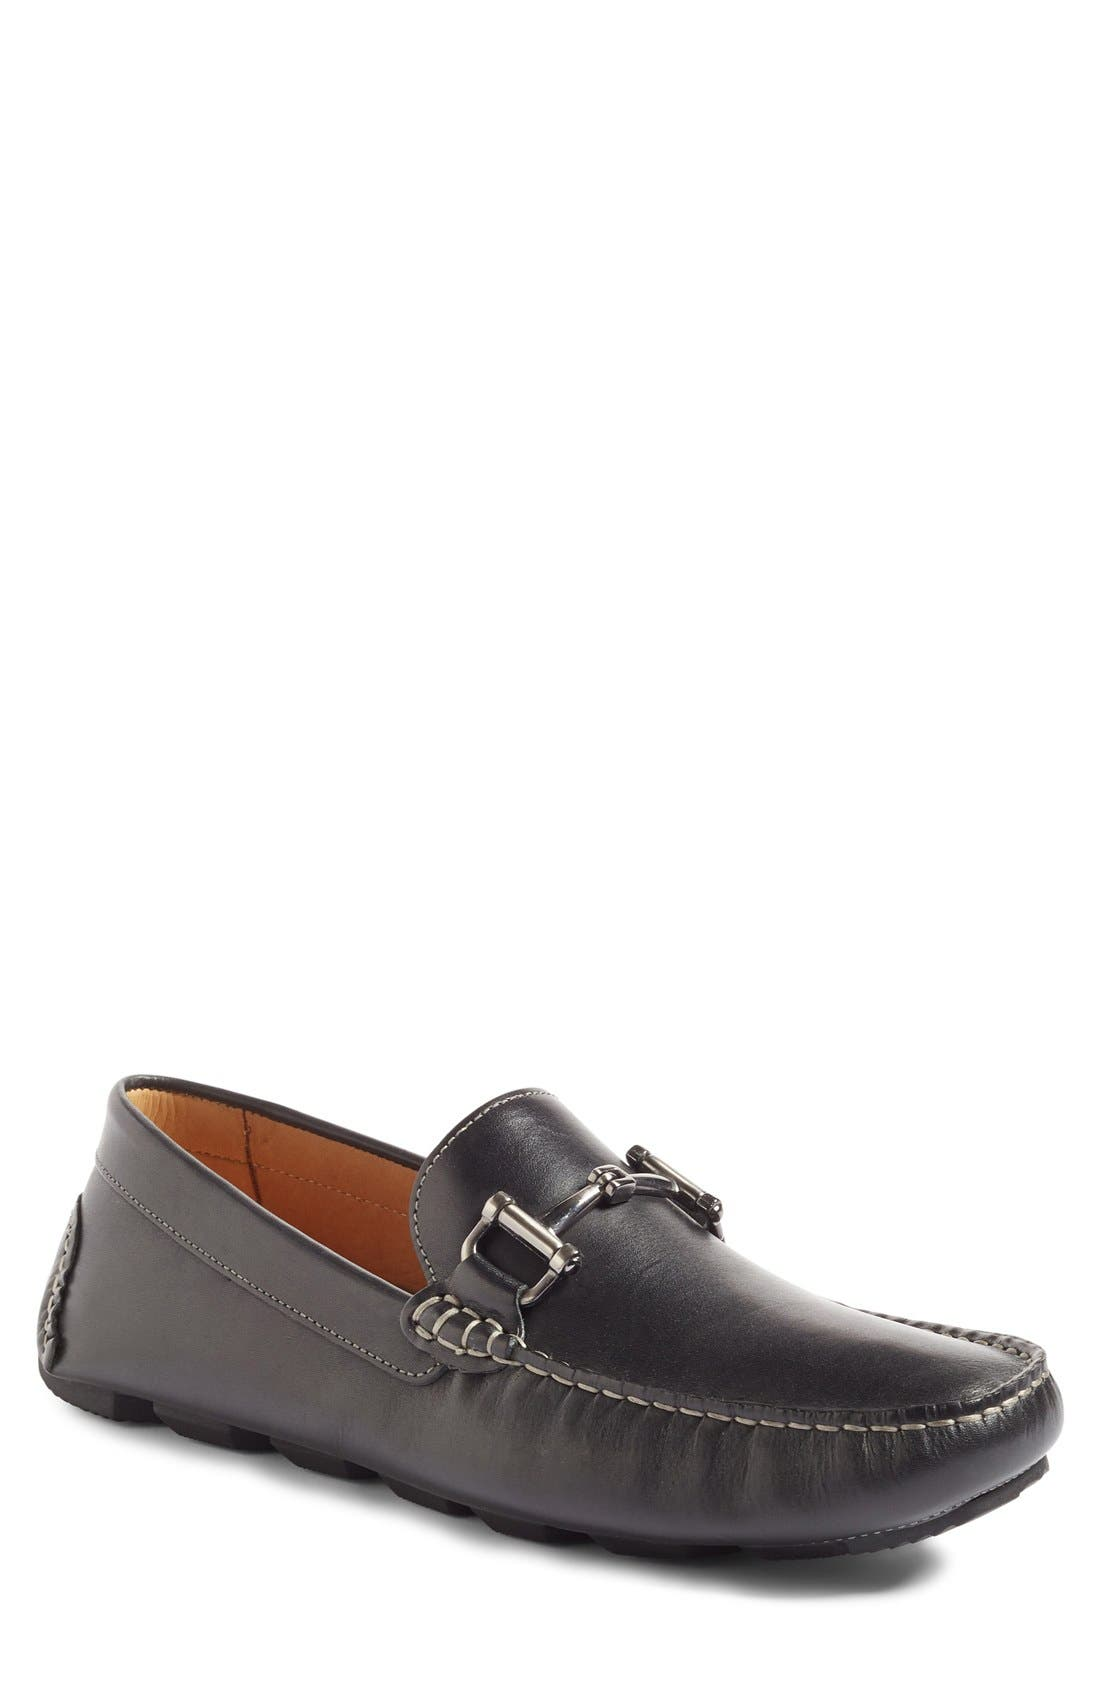 Marco Driving Shoe,                         Main,                         color, BLACK LEATHER